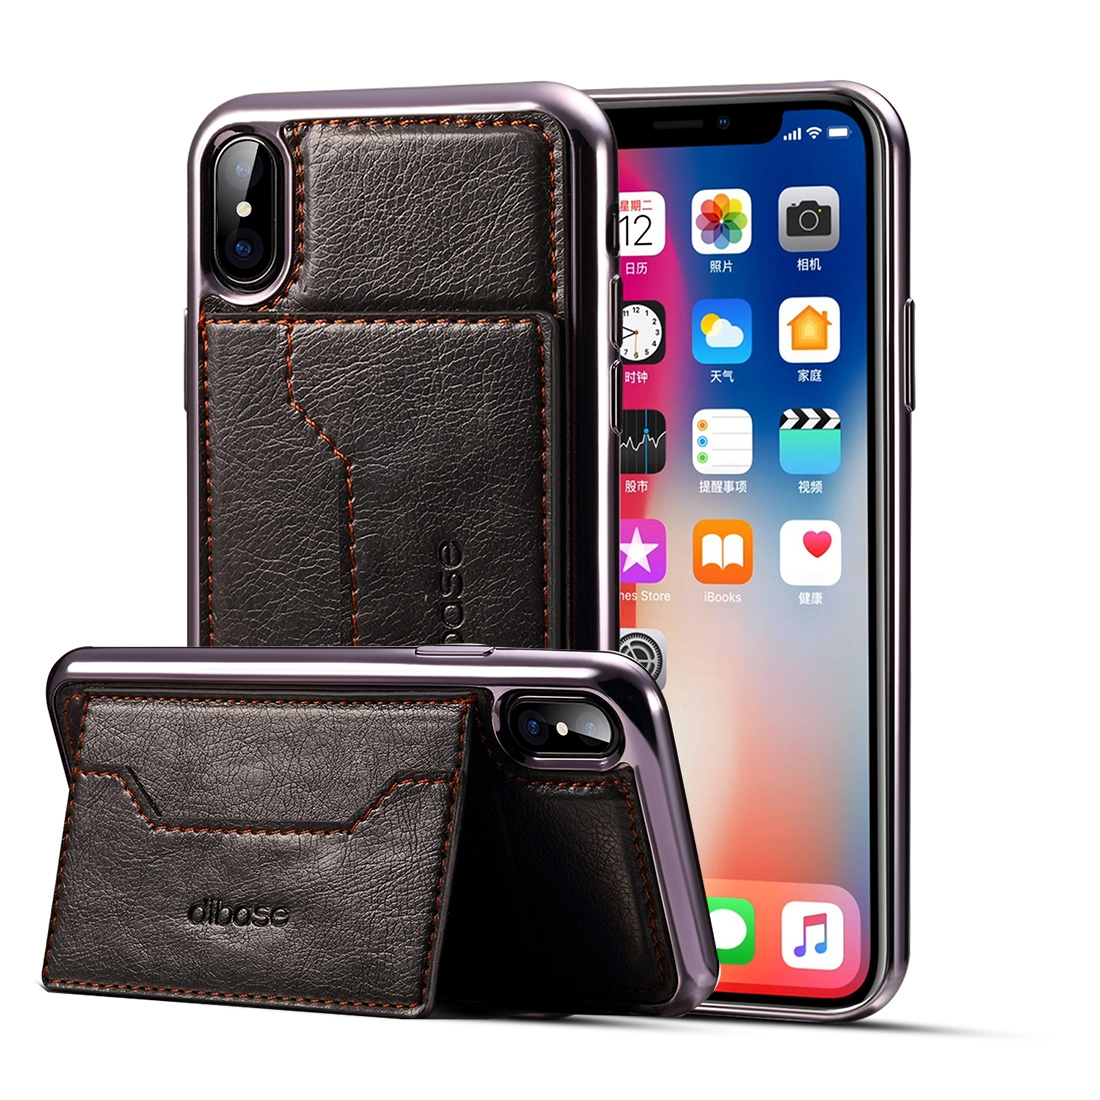 edle schutzh lle cover case f r apple iphone x xs 5 8. Black Bedroom Furniture Sets. Home Design Ideas